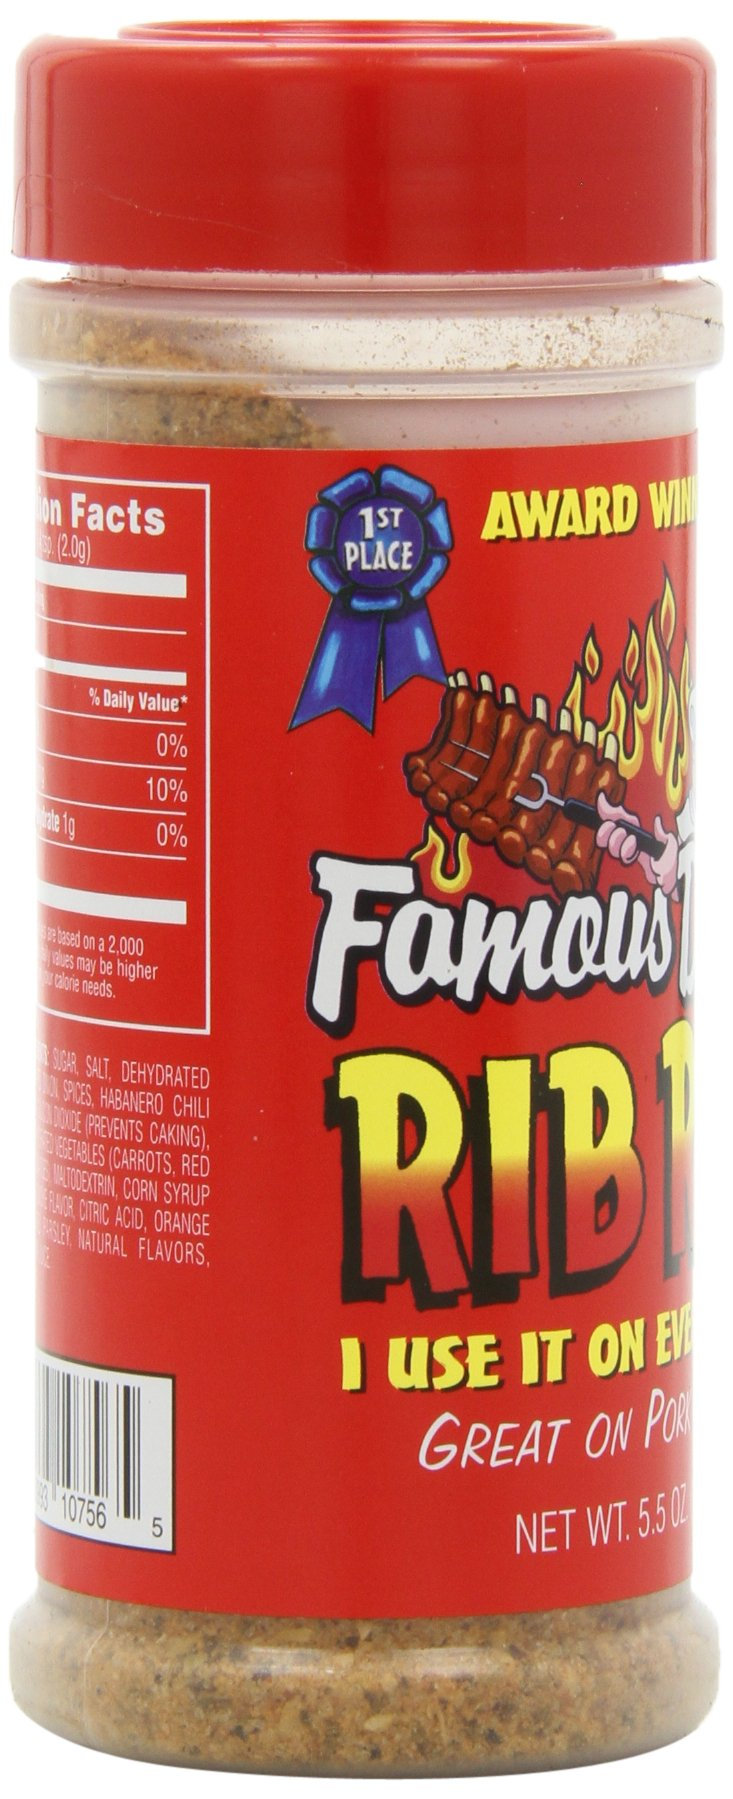 Famous Dave's Seasoning Rib Rub, 5.5-Ounce (Pack of 6) by Famous Dave's (Image #10)